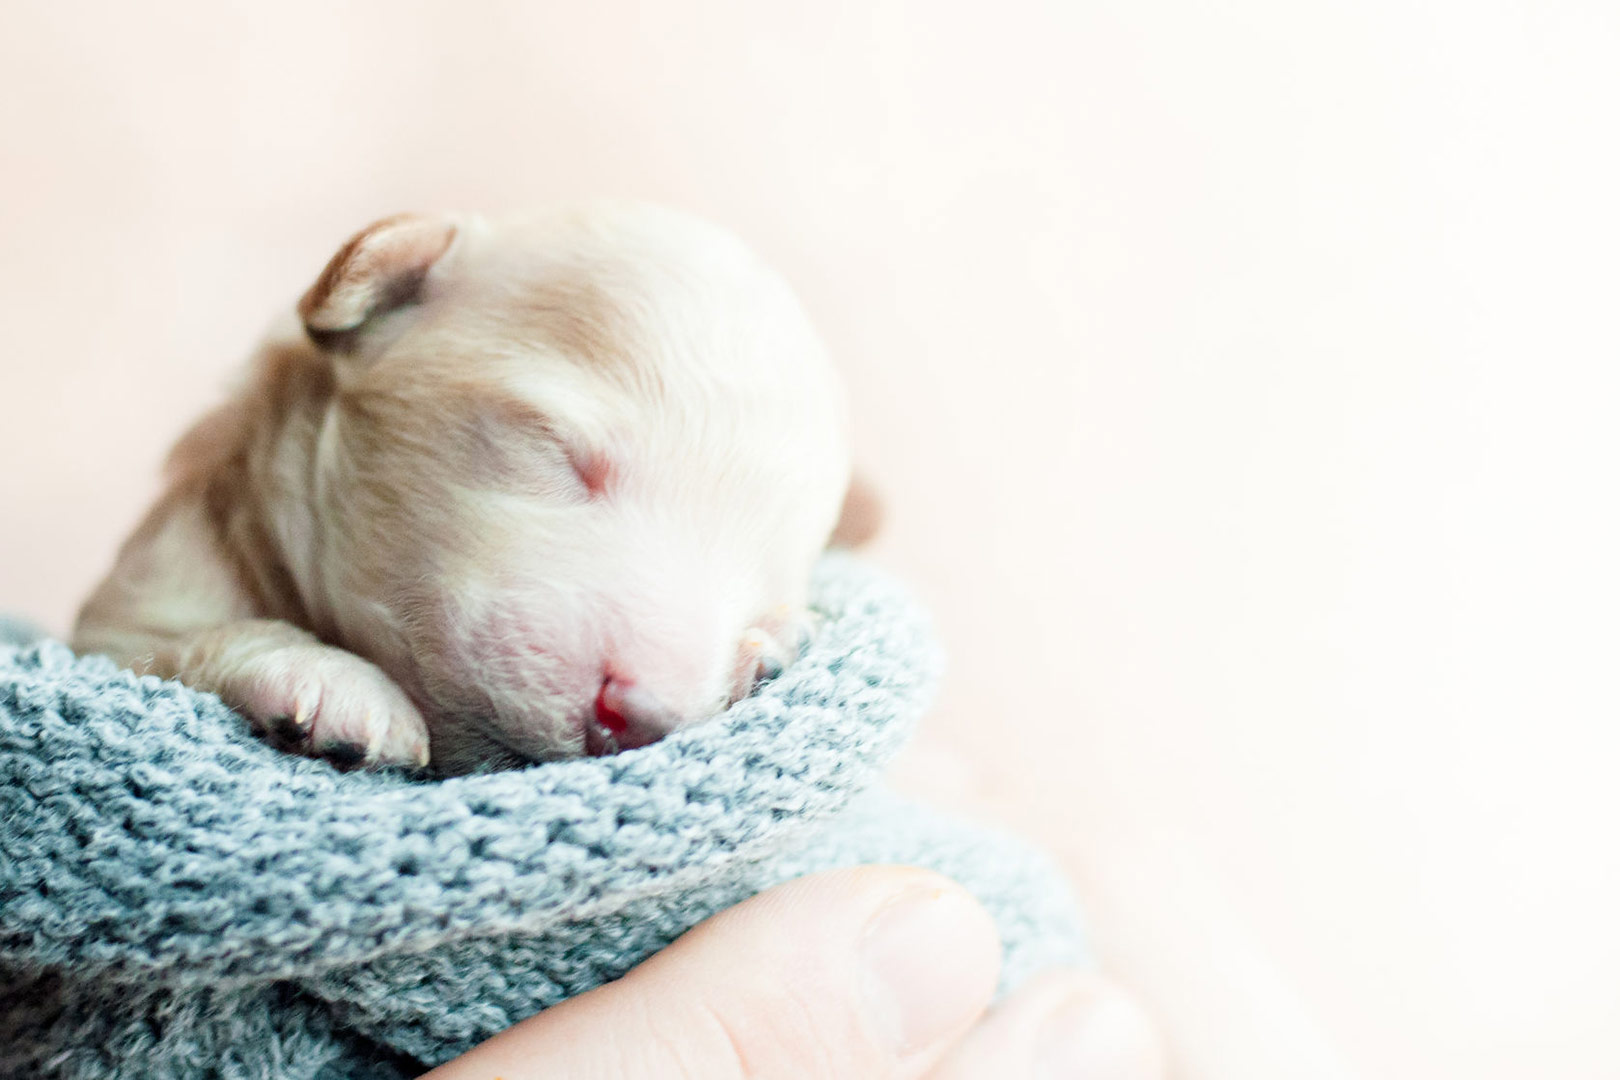 Me-My-Pets-blog-getting-a-puppy-picture-of-a-very-tiny-puppy